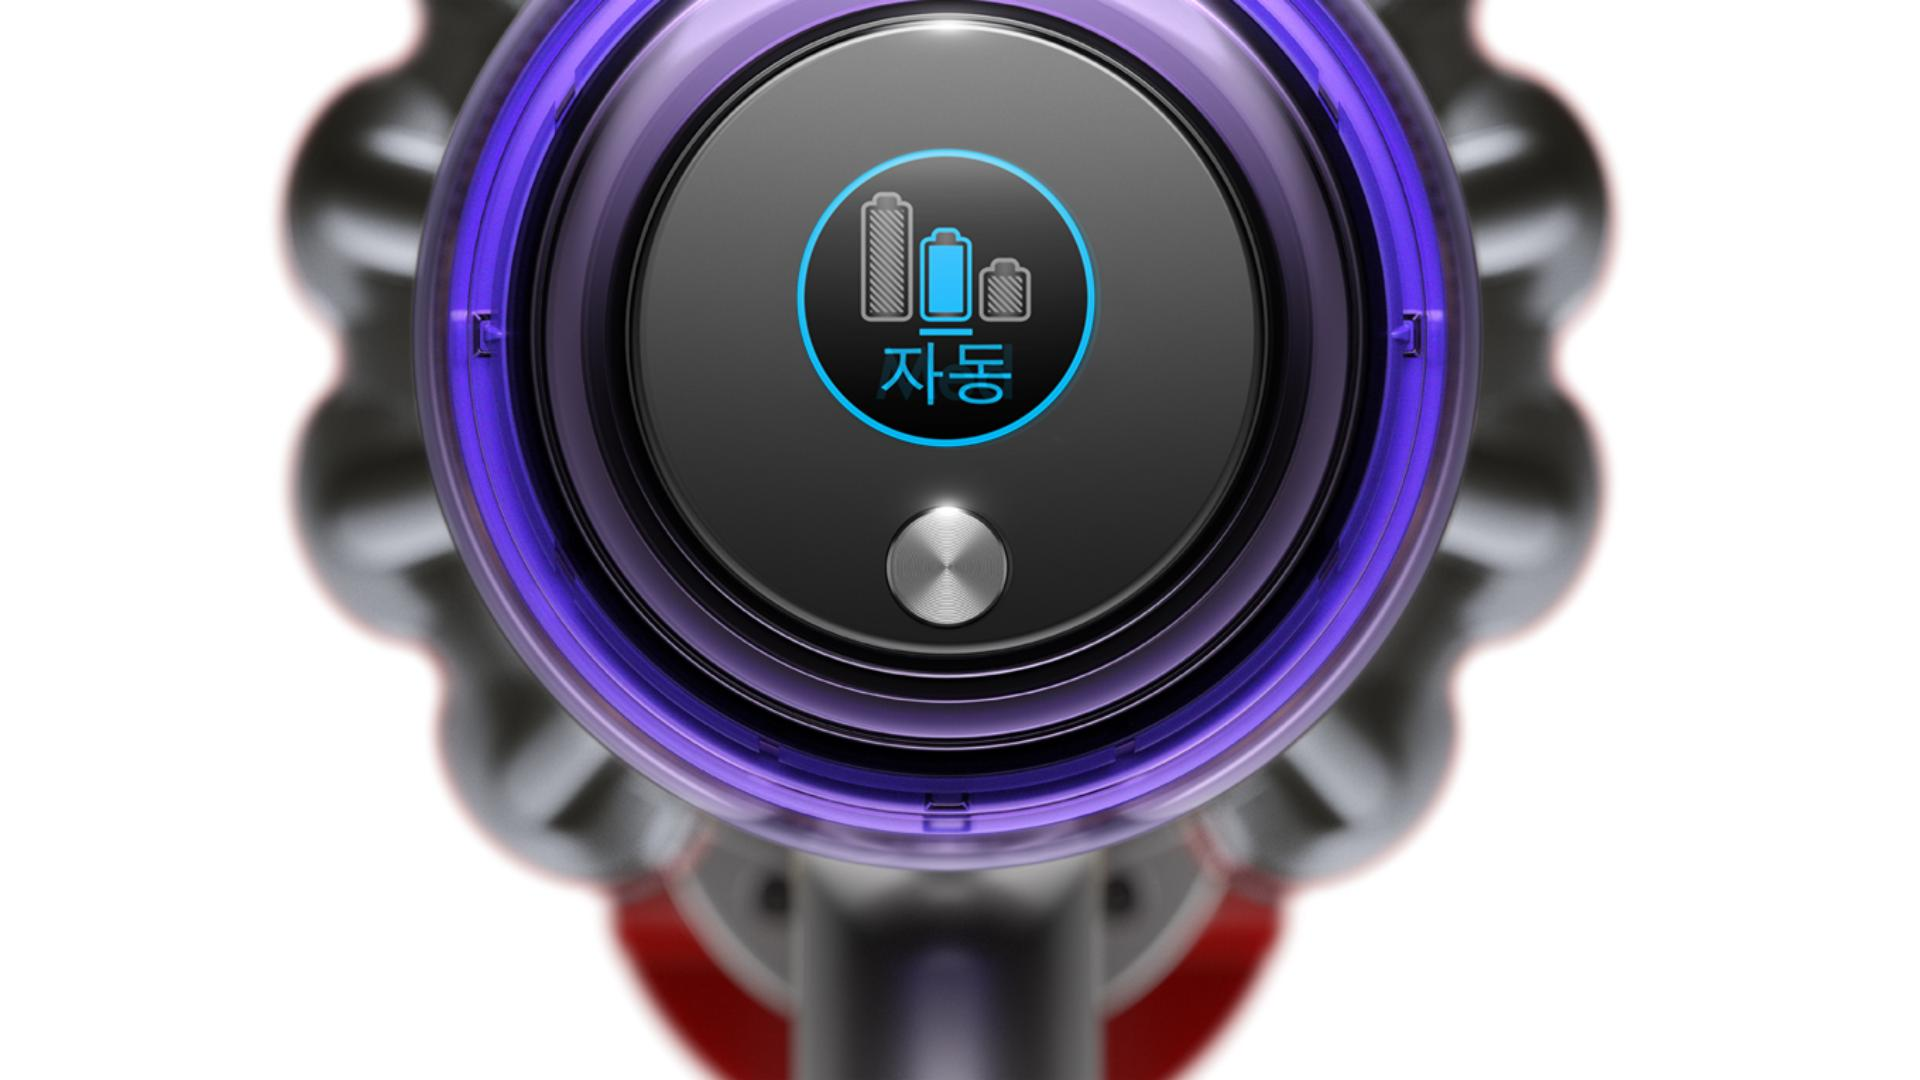 Dyson V11™ vacuum screen showing Auto mode